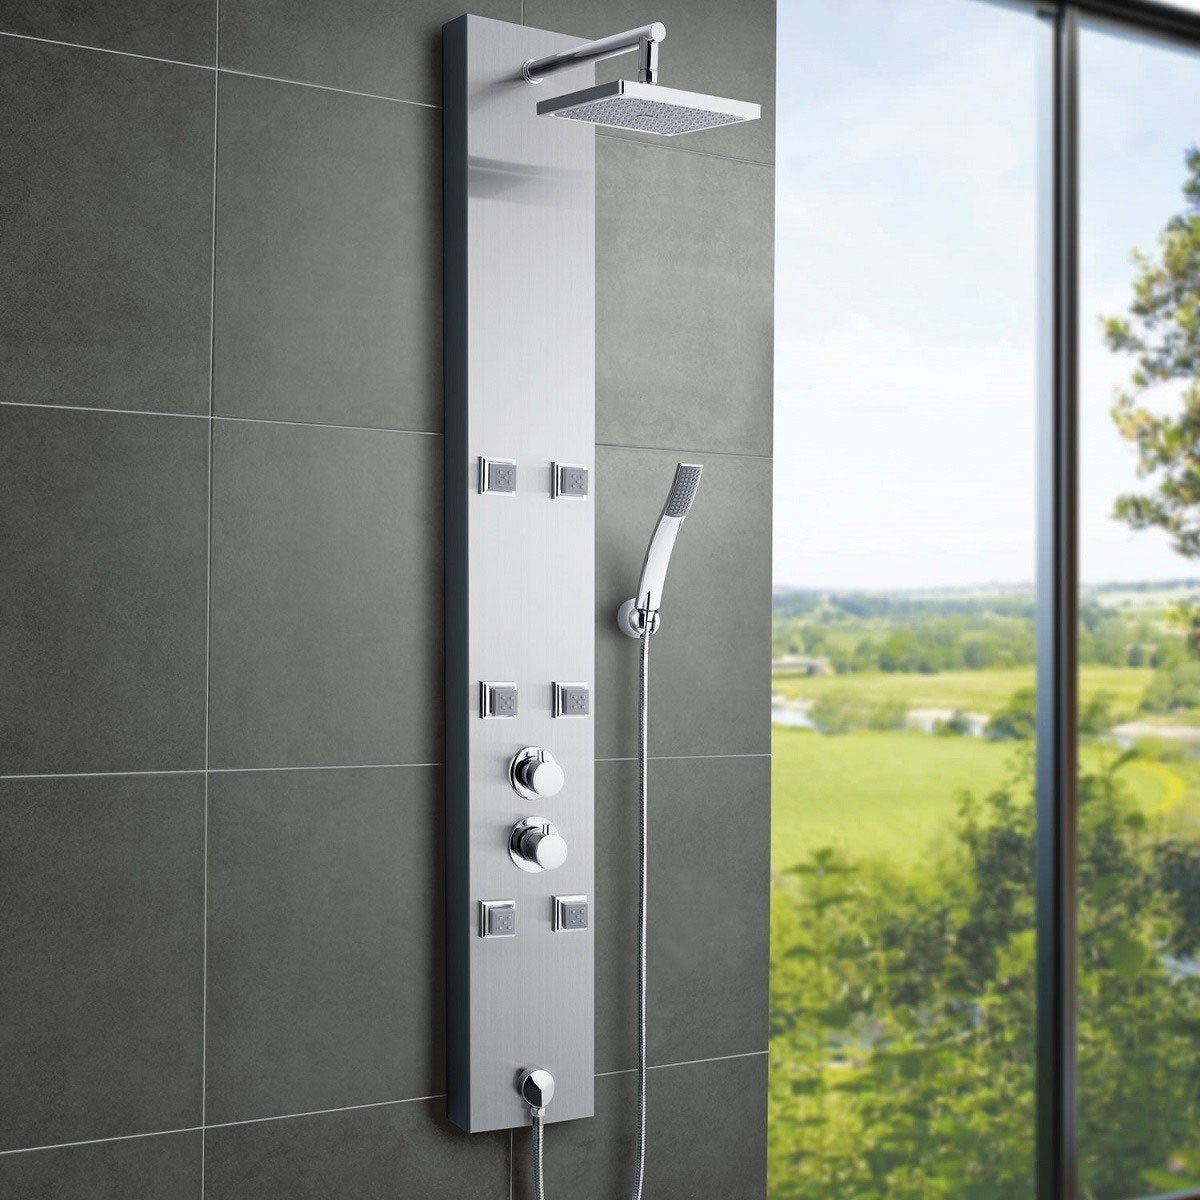 Ultra easton shower tower as374 thermostatic for Shower tower with body jets